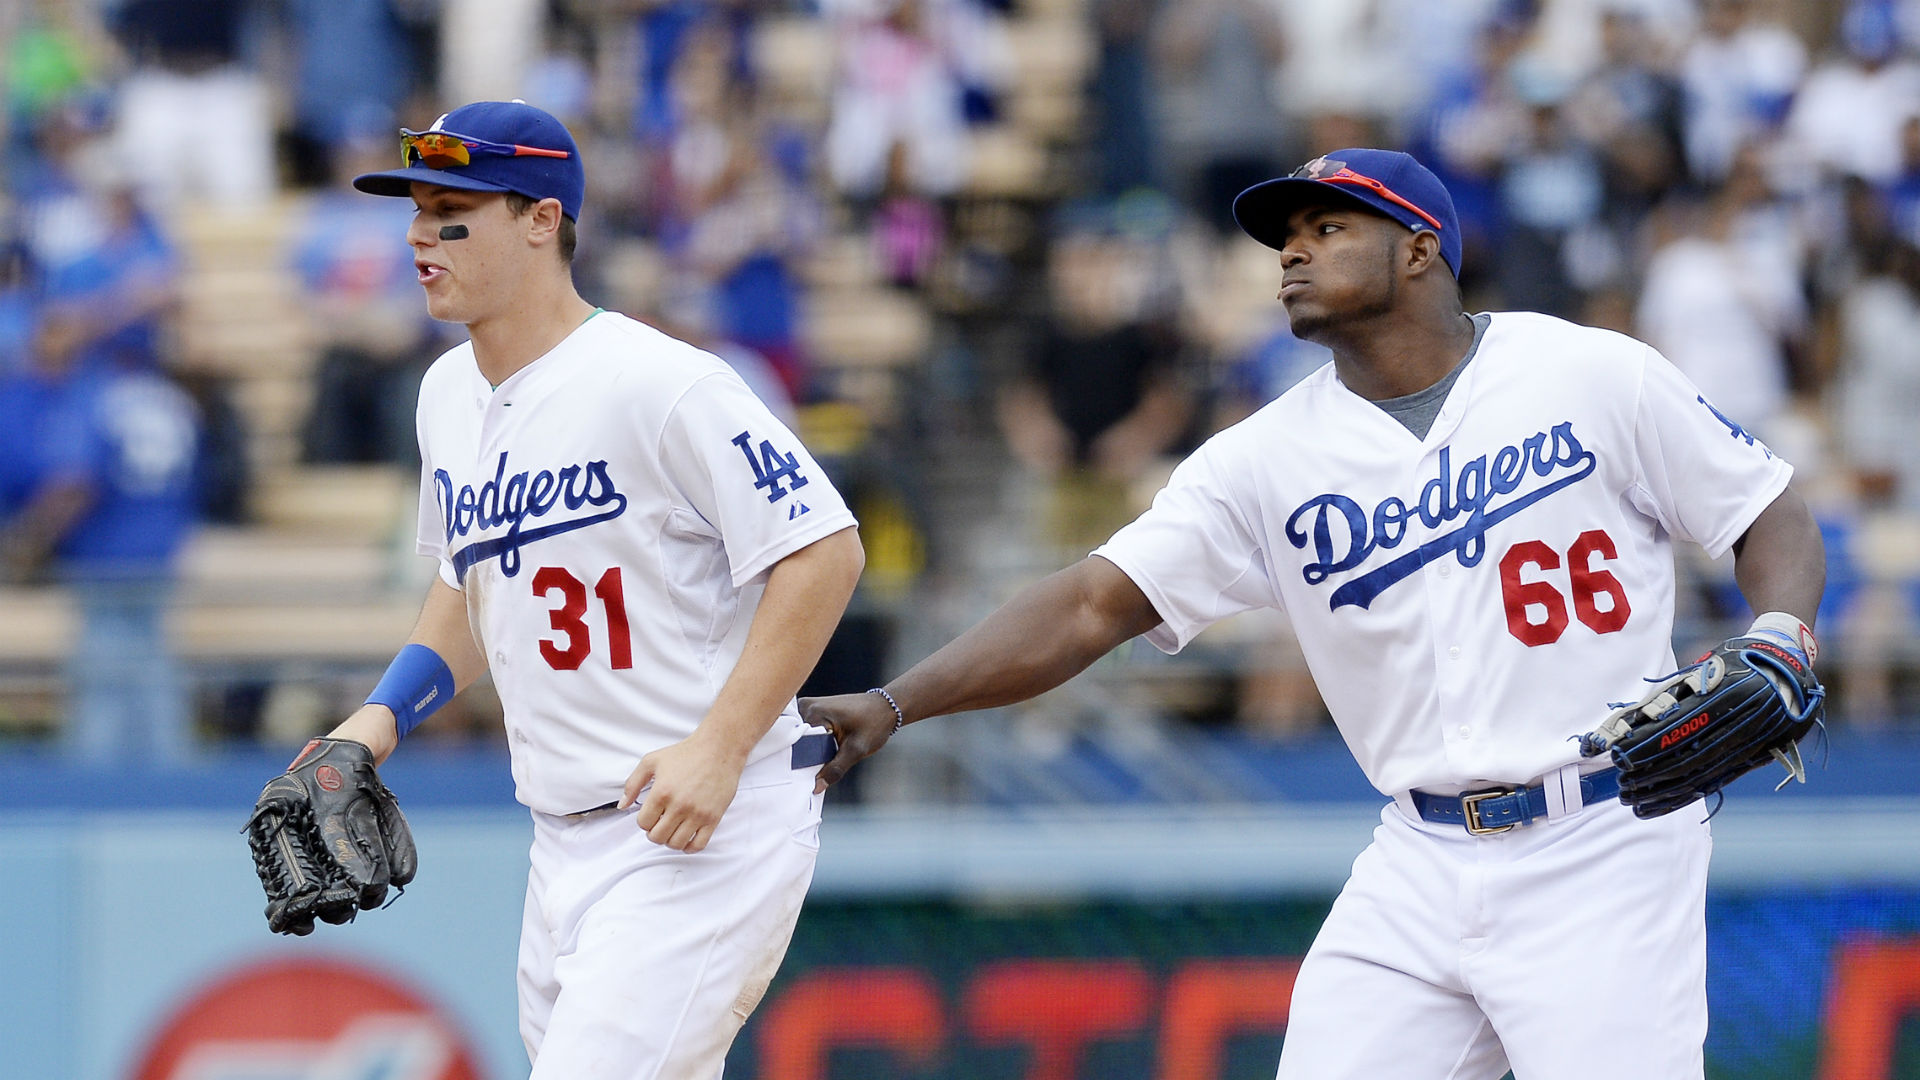 Yasiel Puig, Joc Pederson Collide Full Speed in the Outfield